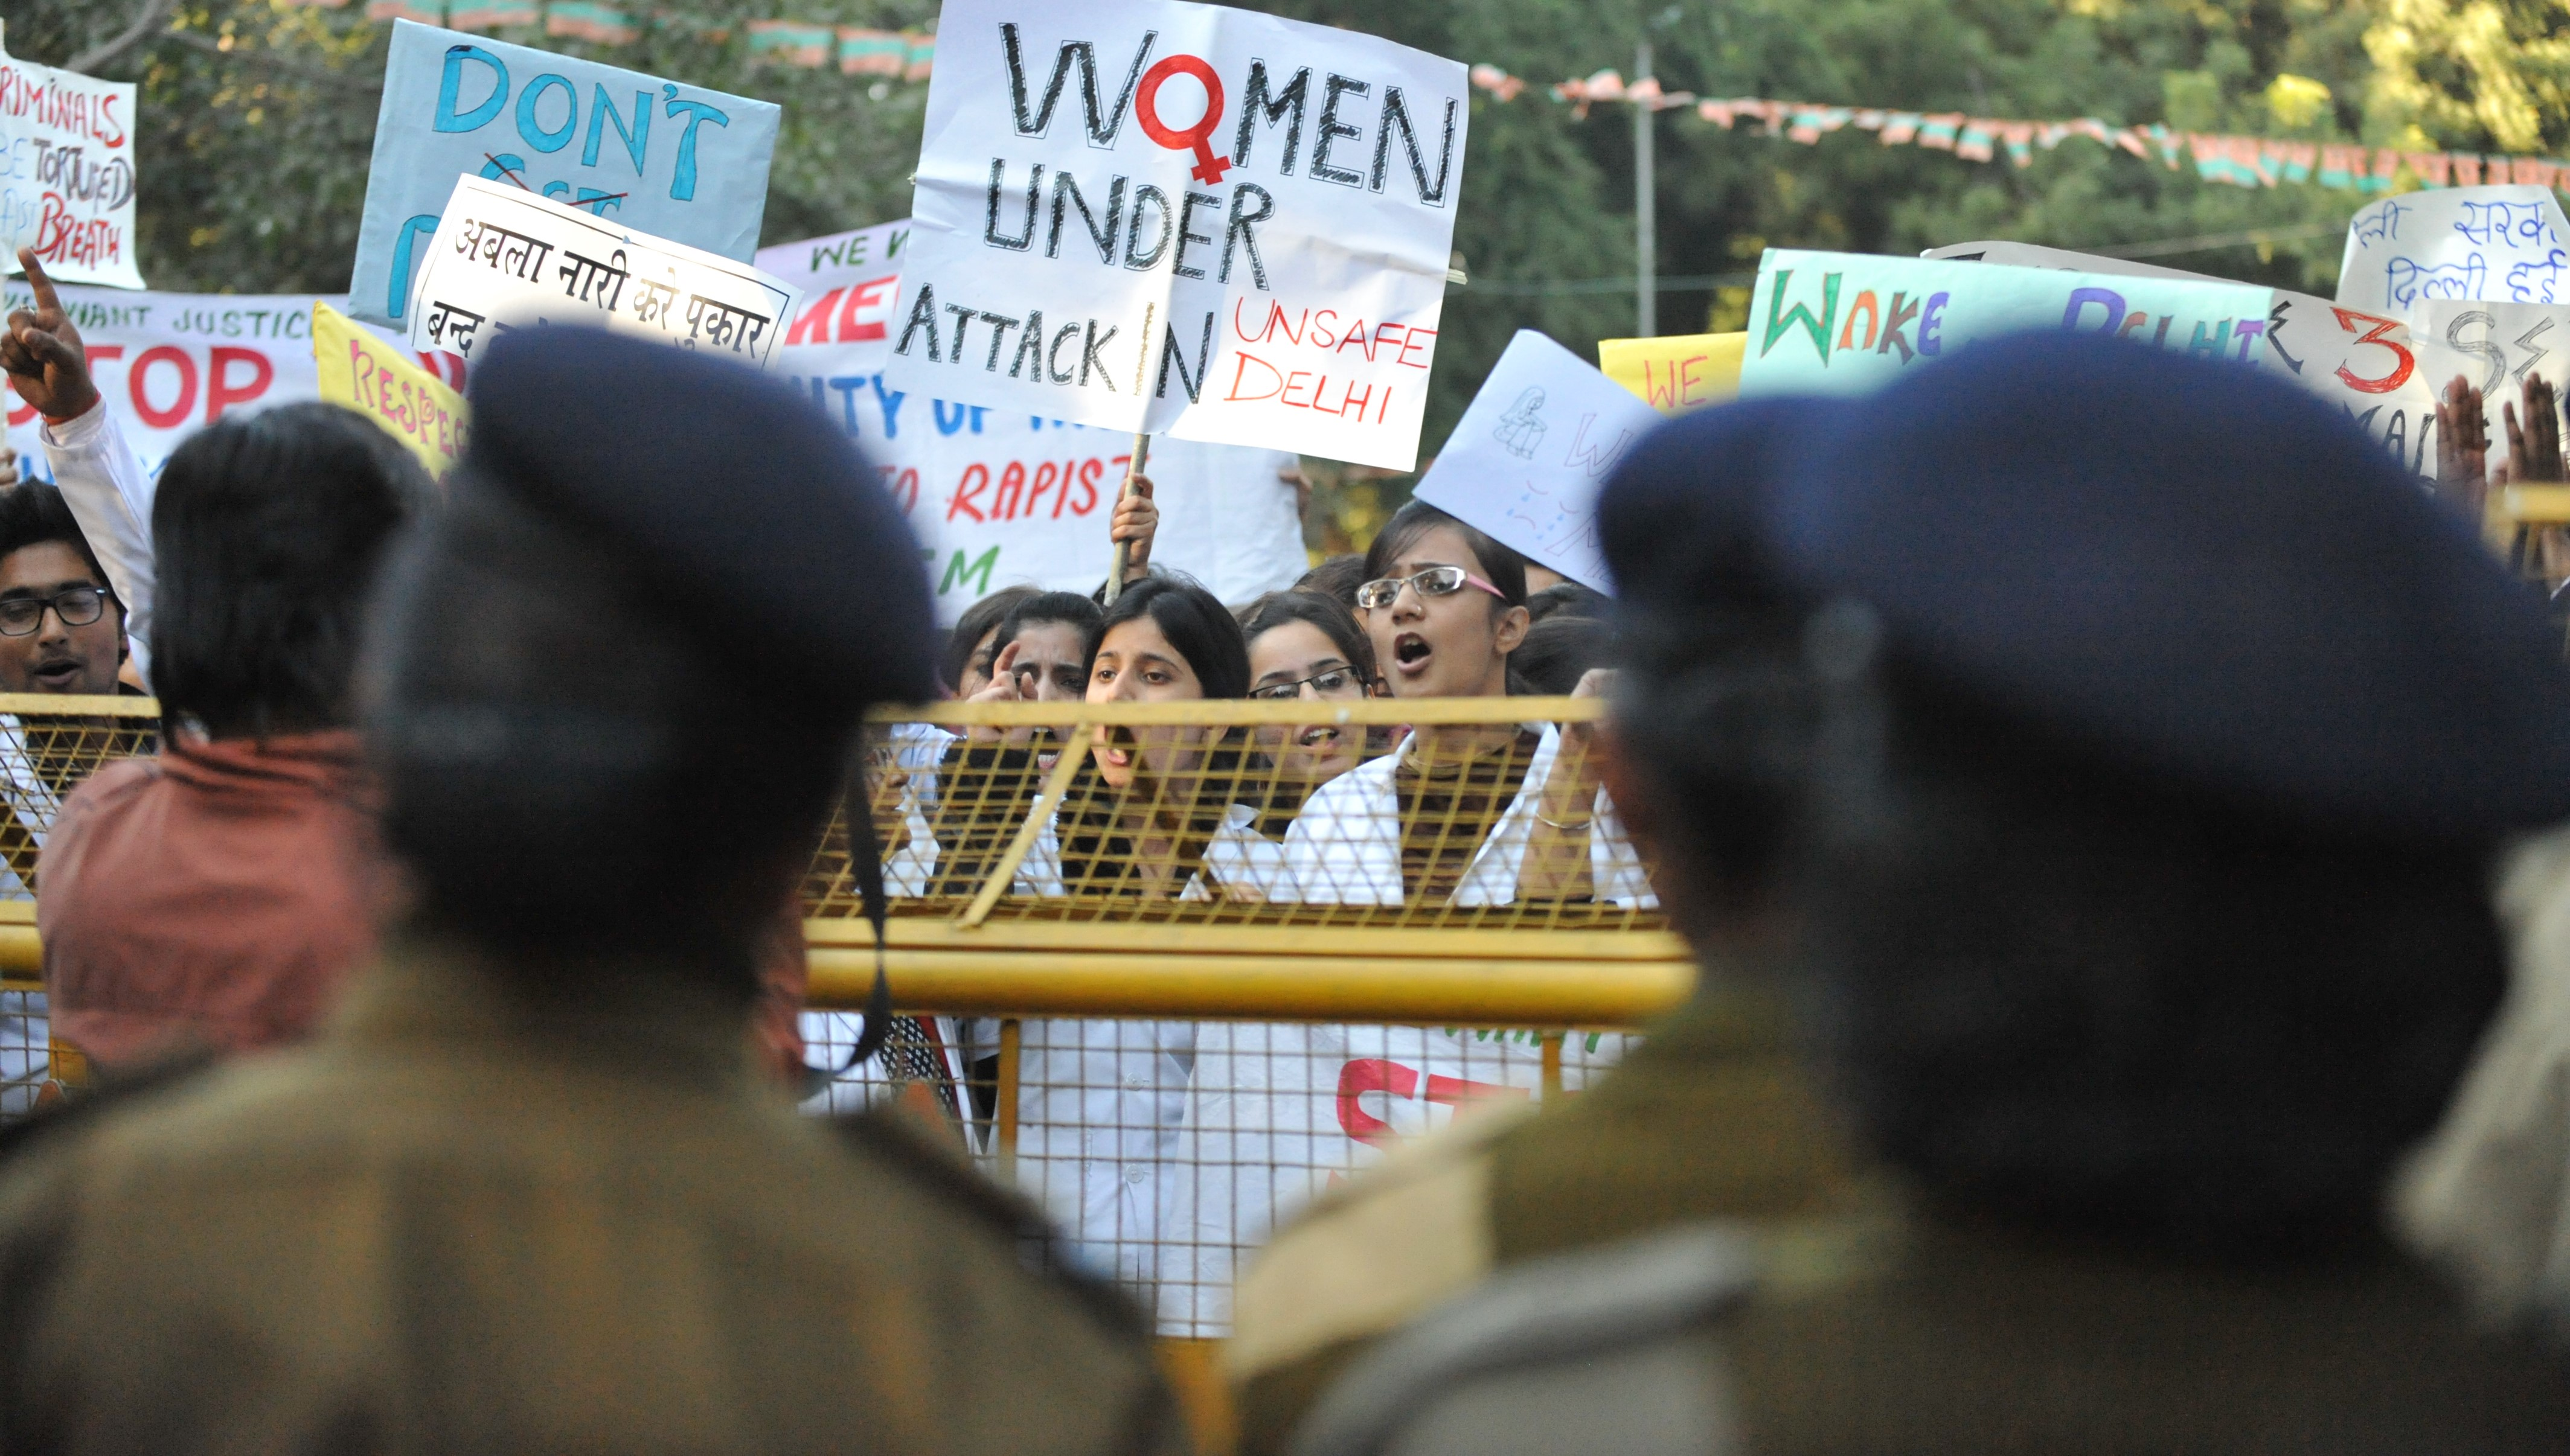 A rally in 2012 protesting the gang rape and assault of Jyoti Singh, who later died of her injuries (Photo: Getty Images/Barcroft Media)